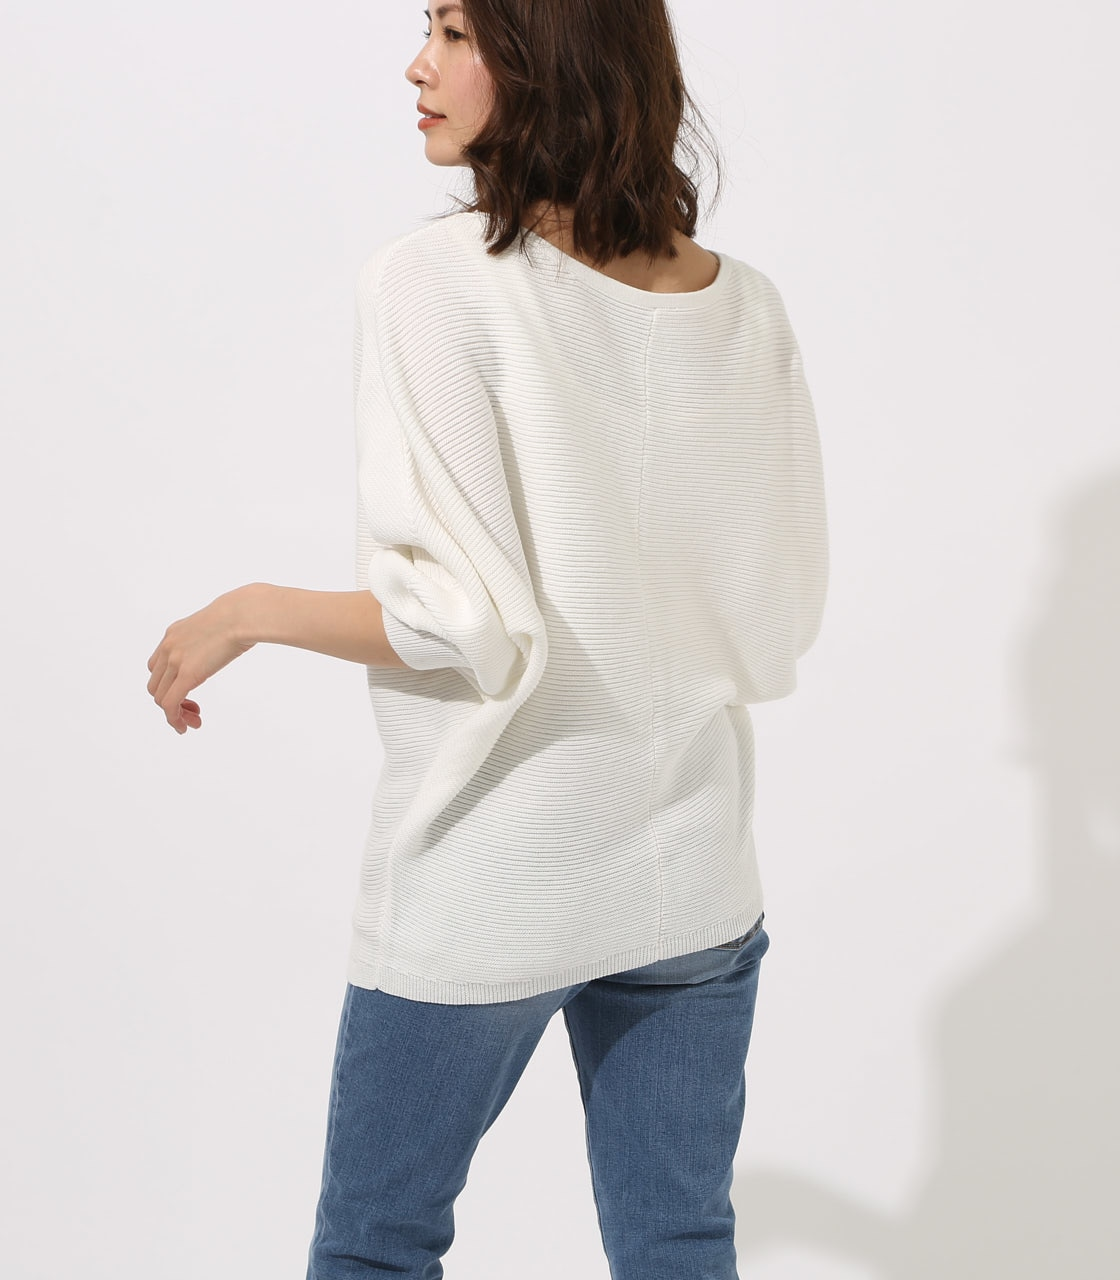 【AZUL BY MOUSSY】2WAY DOLMAN KNIT TOPS 詳細画像 O/WHT 3